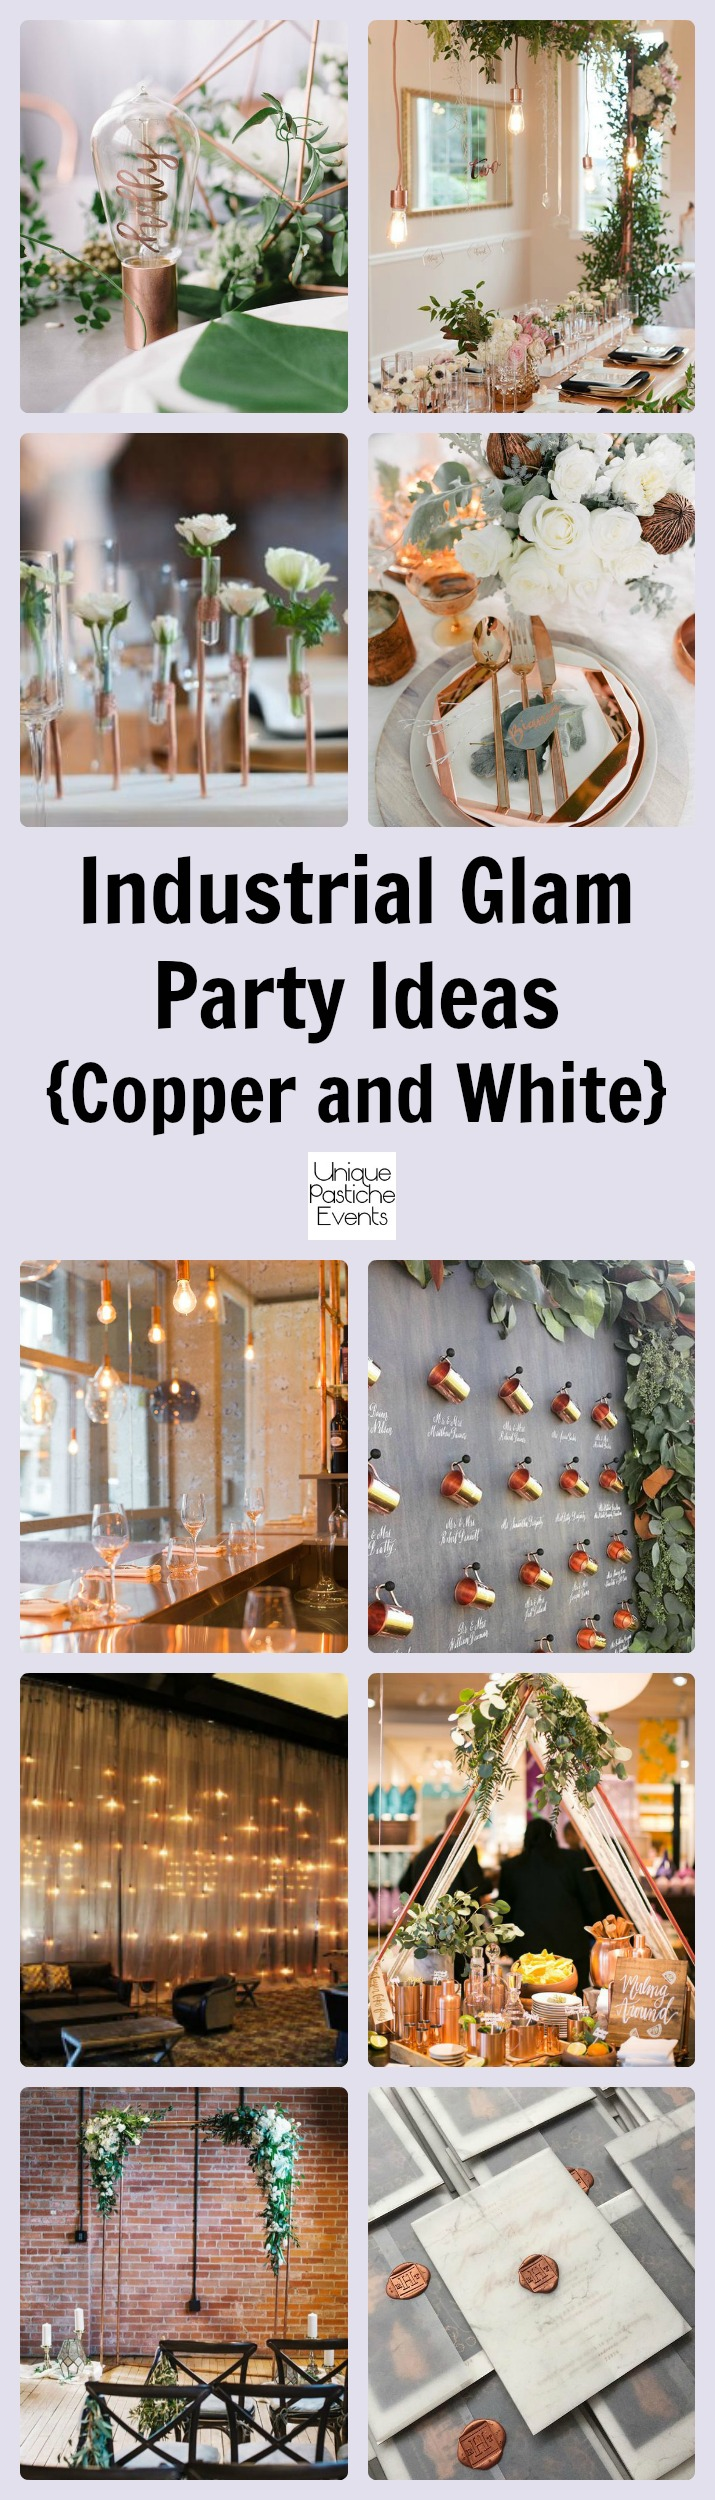 Industrial Glam Party in Copper and White